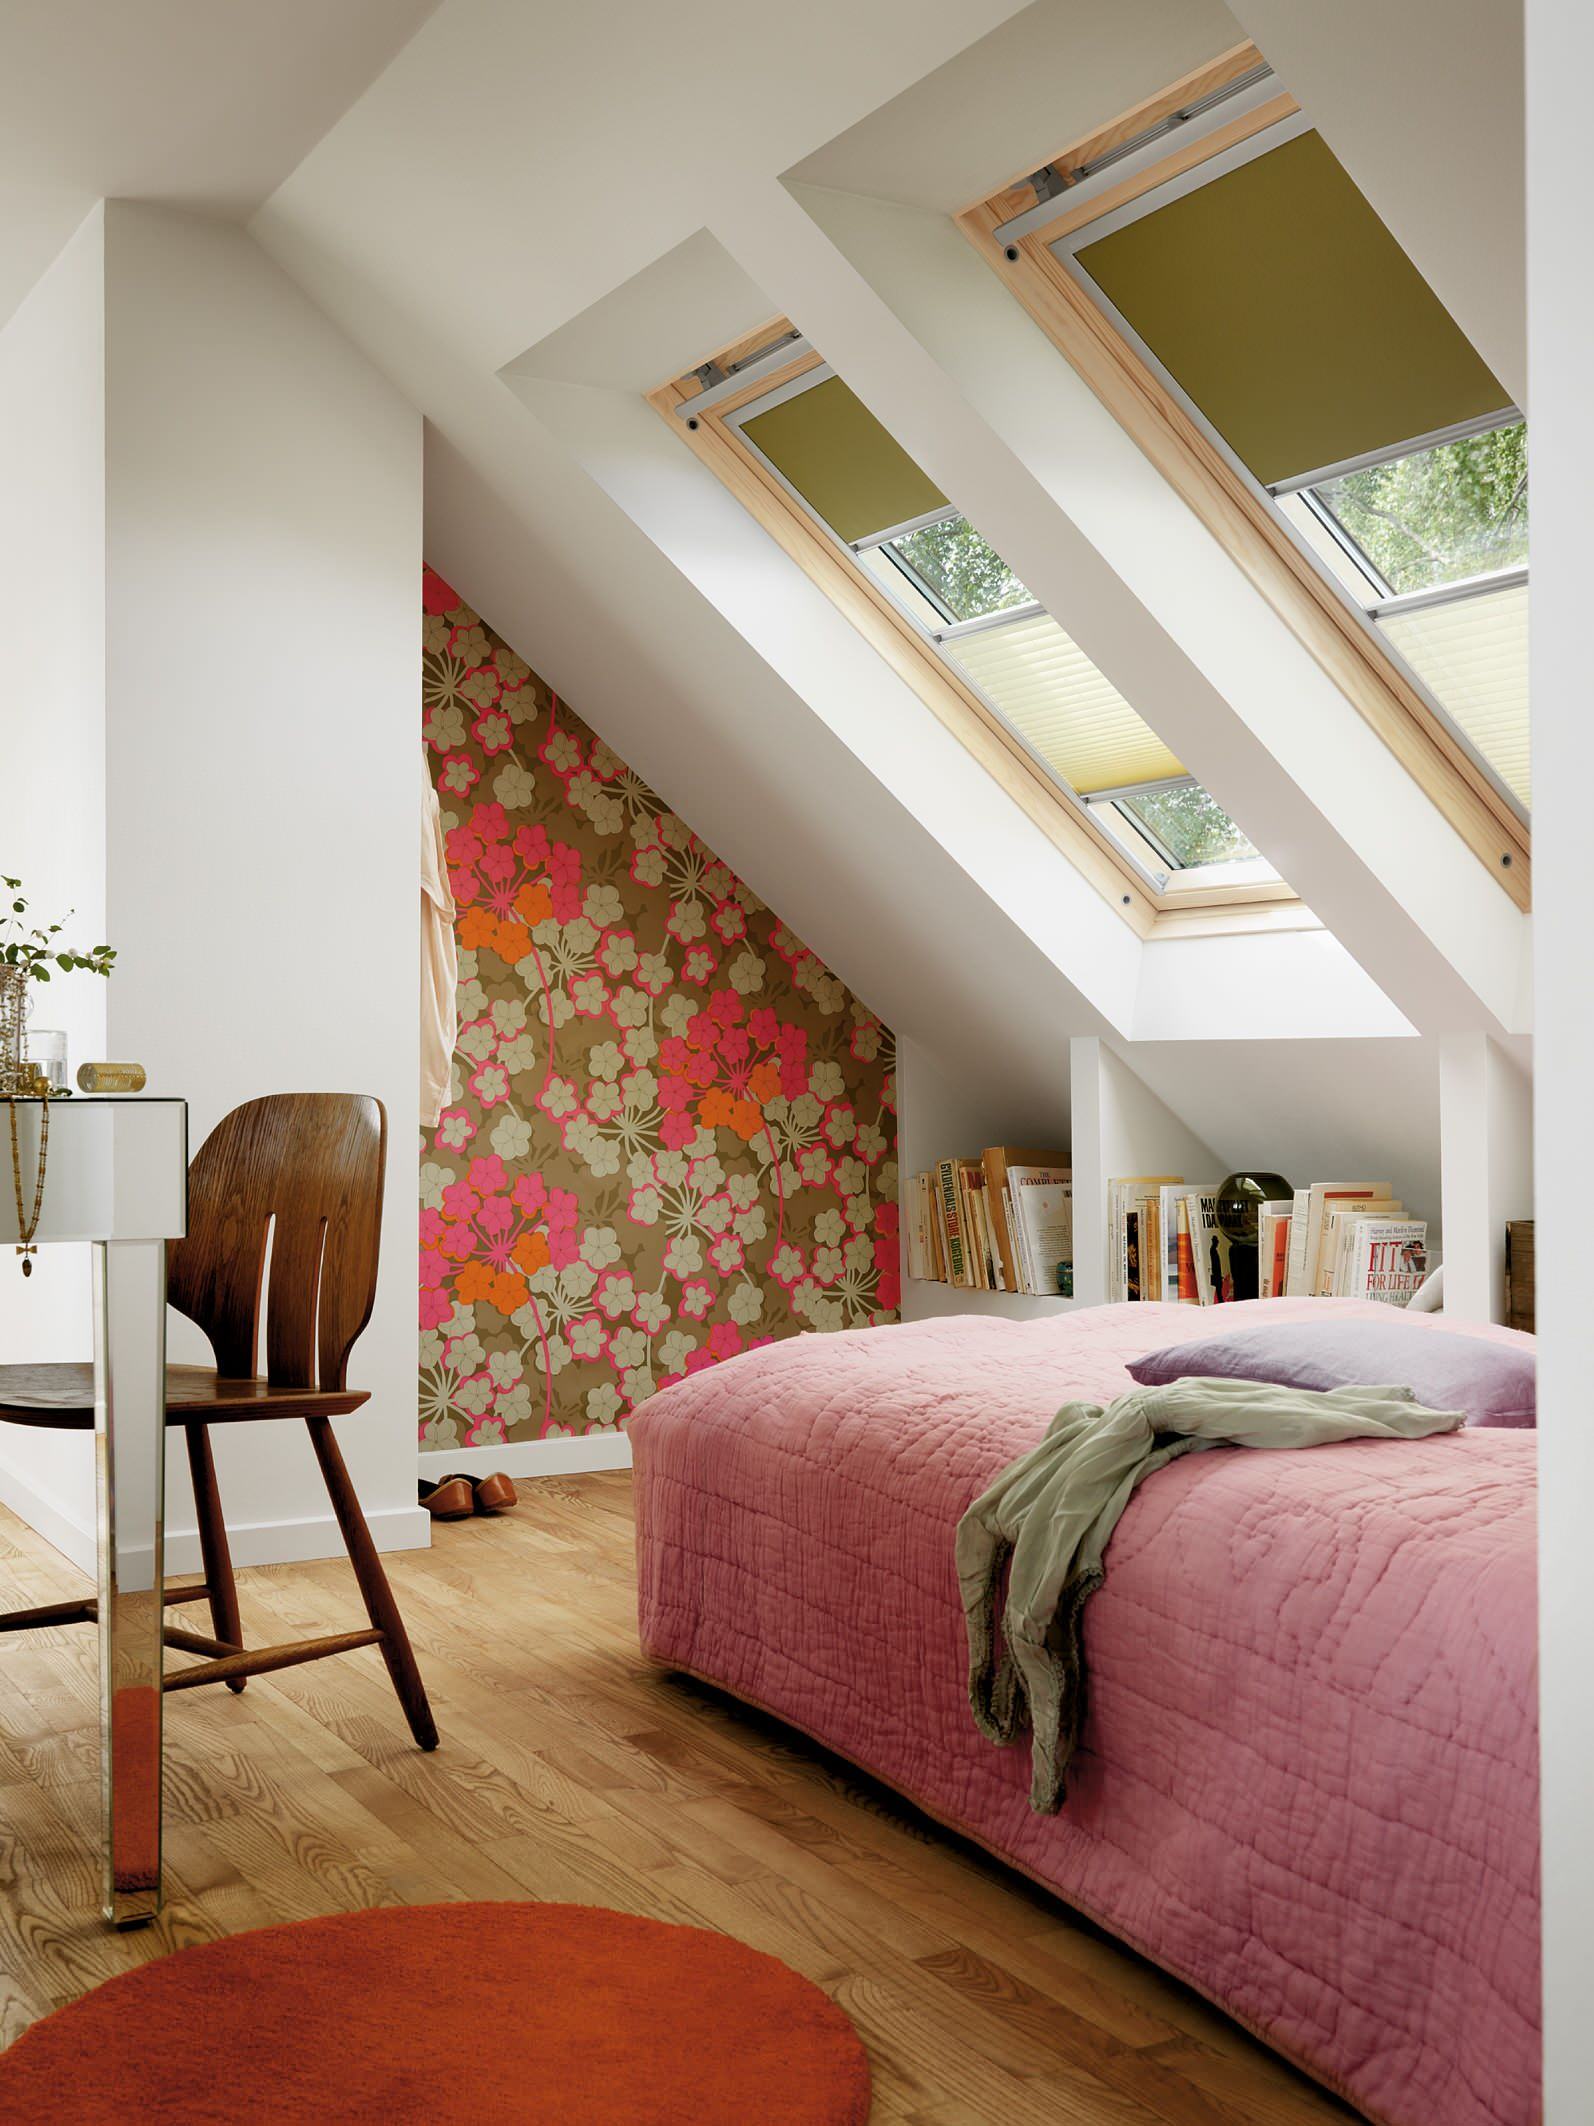 wallpaper design wallpaper design Amazing Wallpaper Designs Which Can Improve Any Bedroom 8